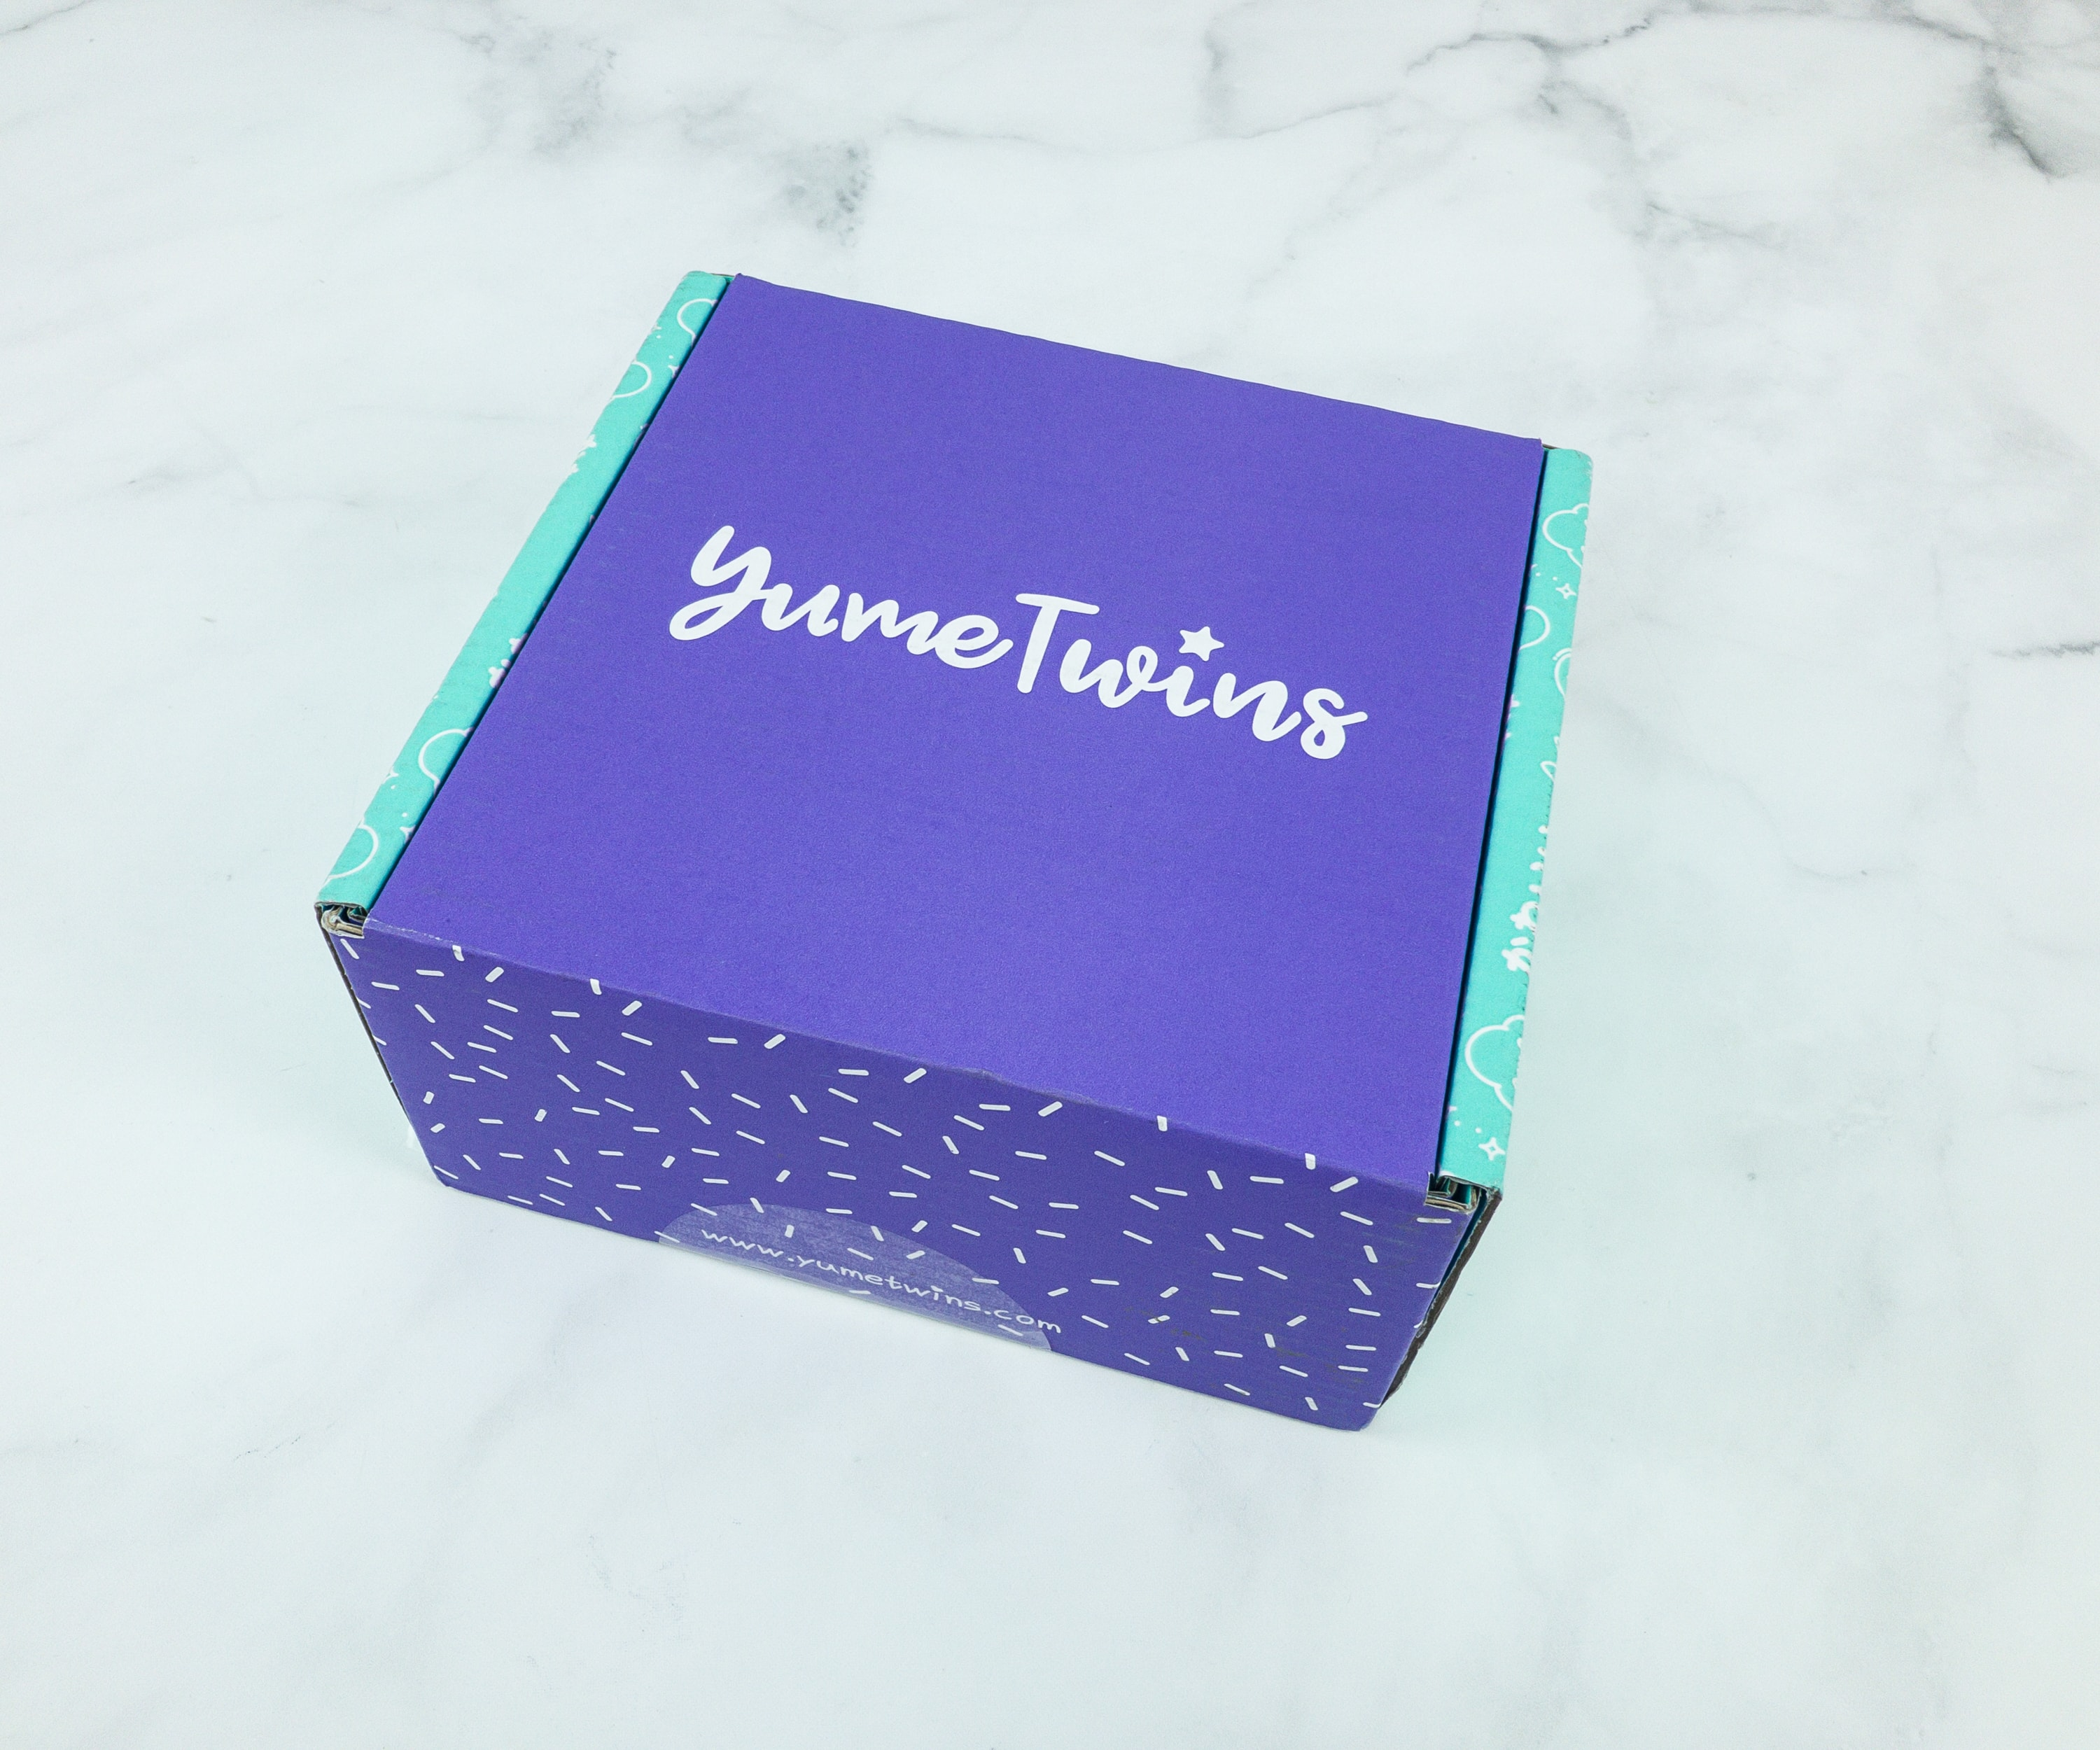 YumeTwins February 2019 Subscription Box Review + Coupon